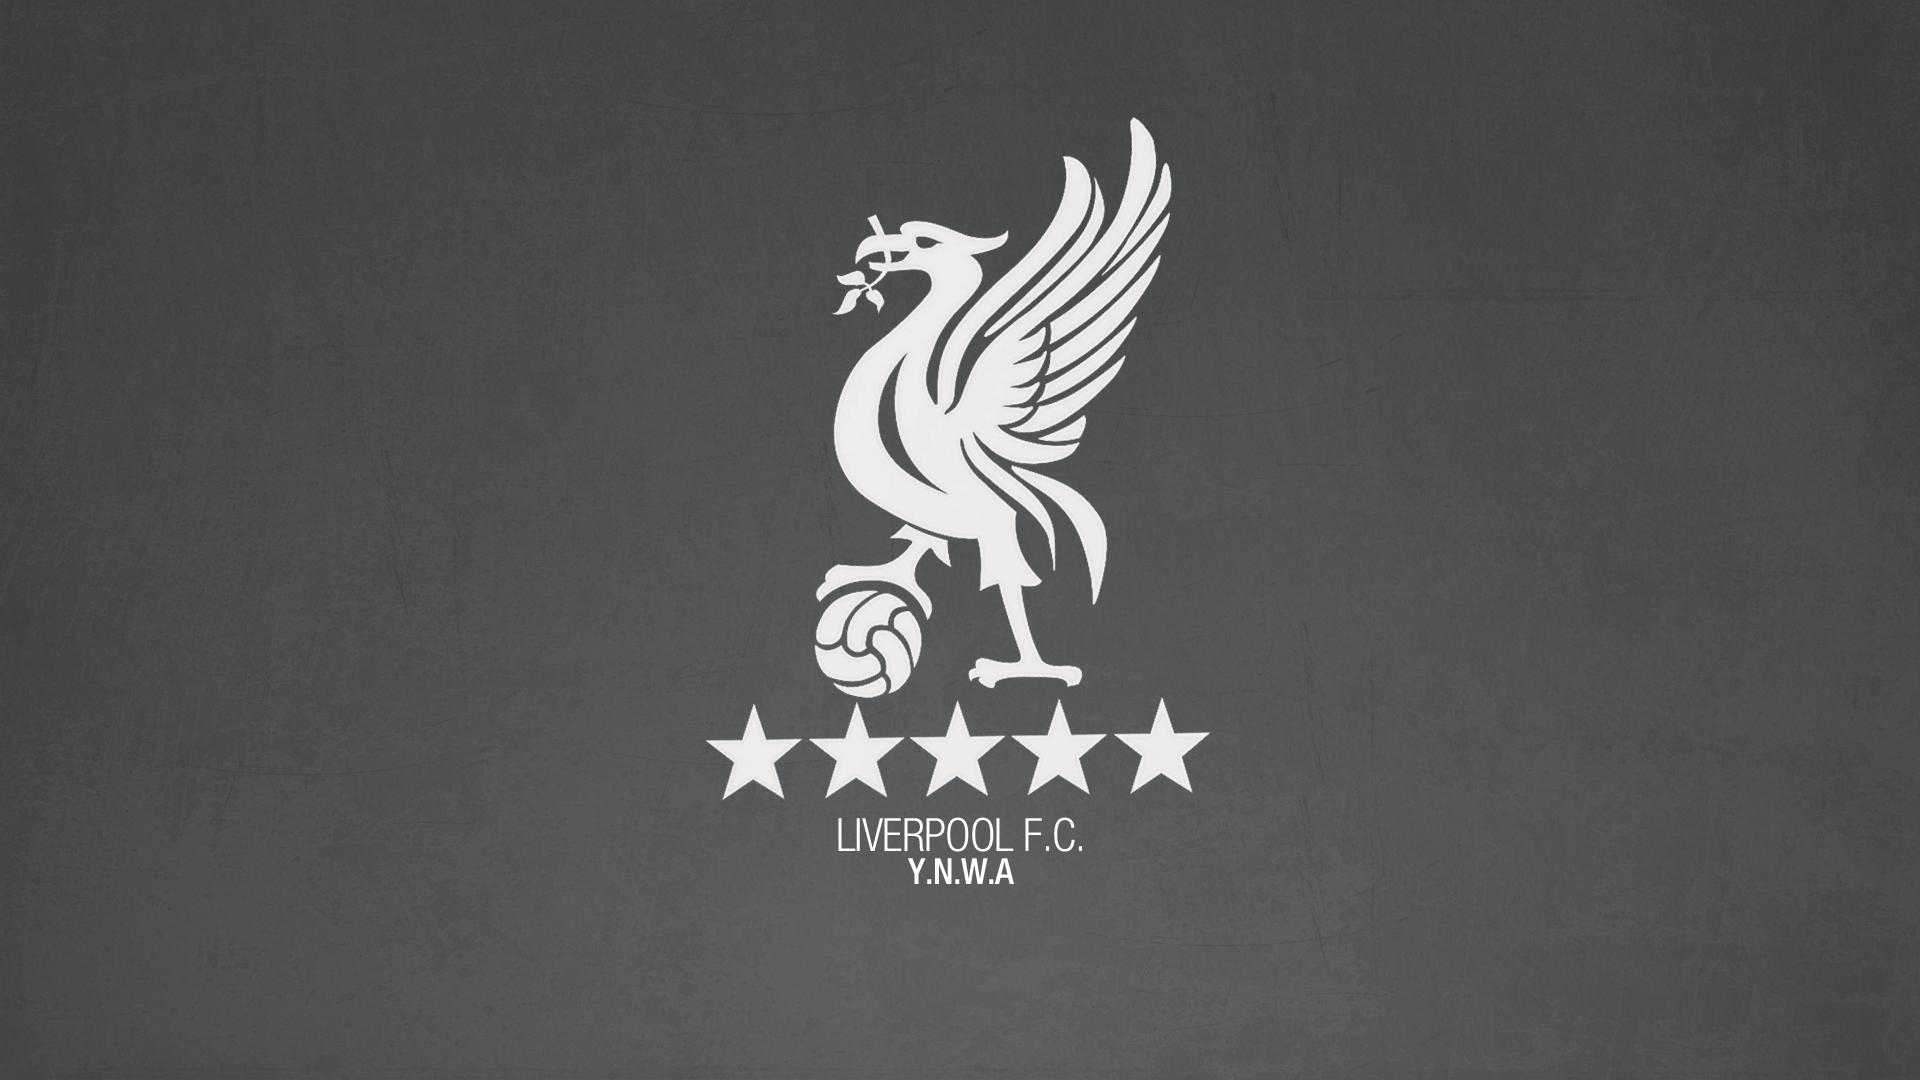 Amazing Wallpaper High Resolution Logo - Liverpool-Wallpaper-High-Res  Collection_667527.jpg